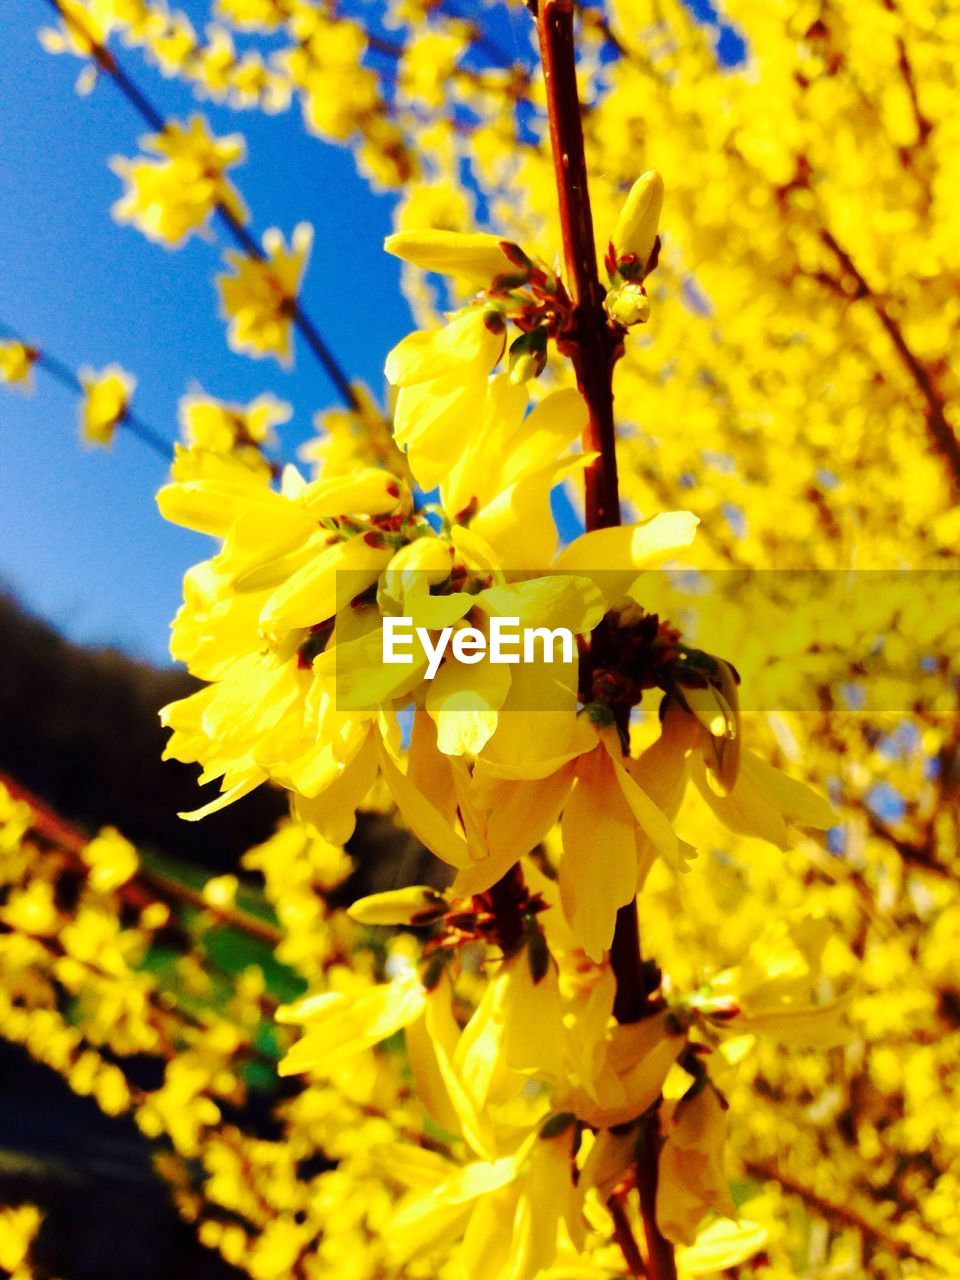 Yellow flowers growing on tree